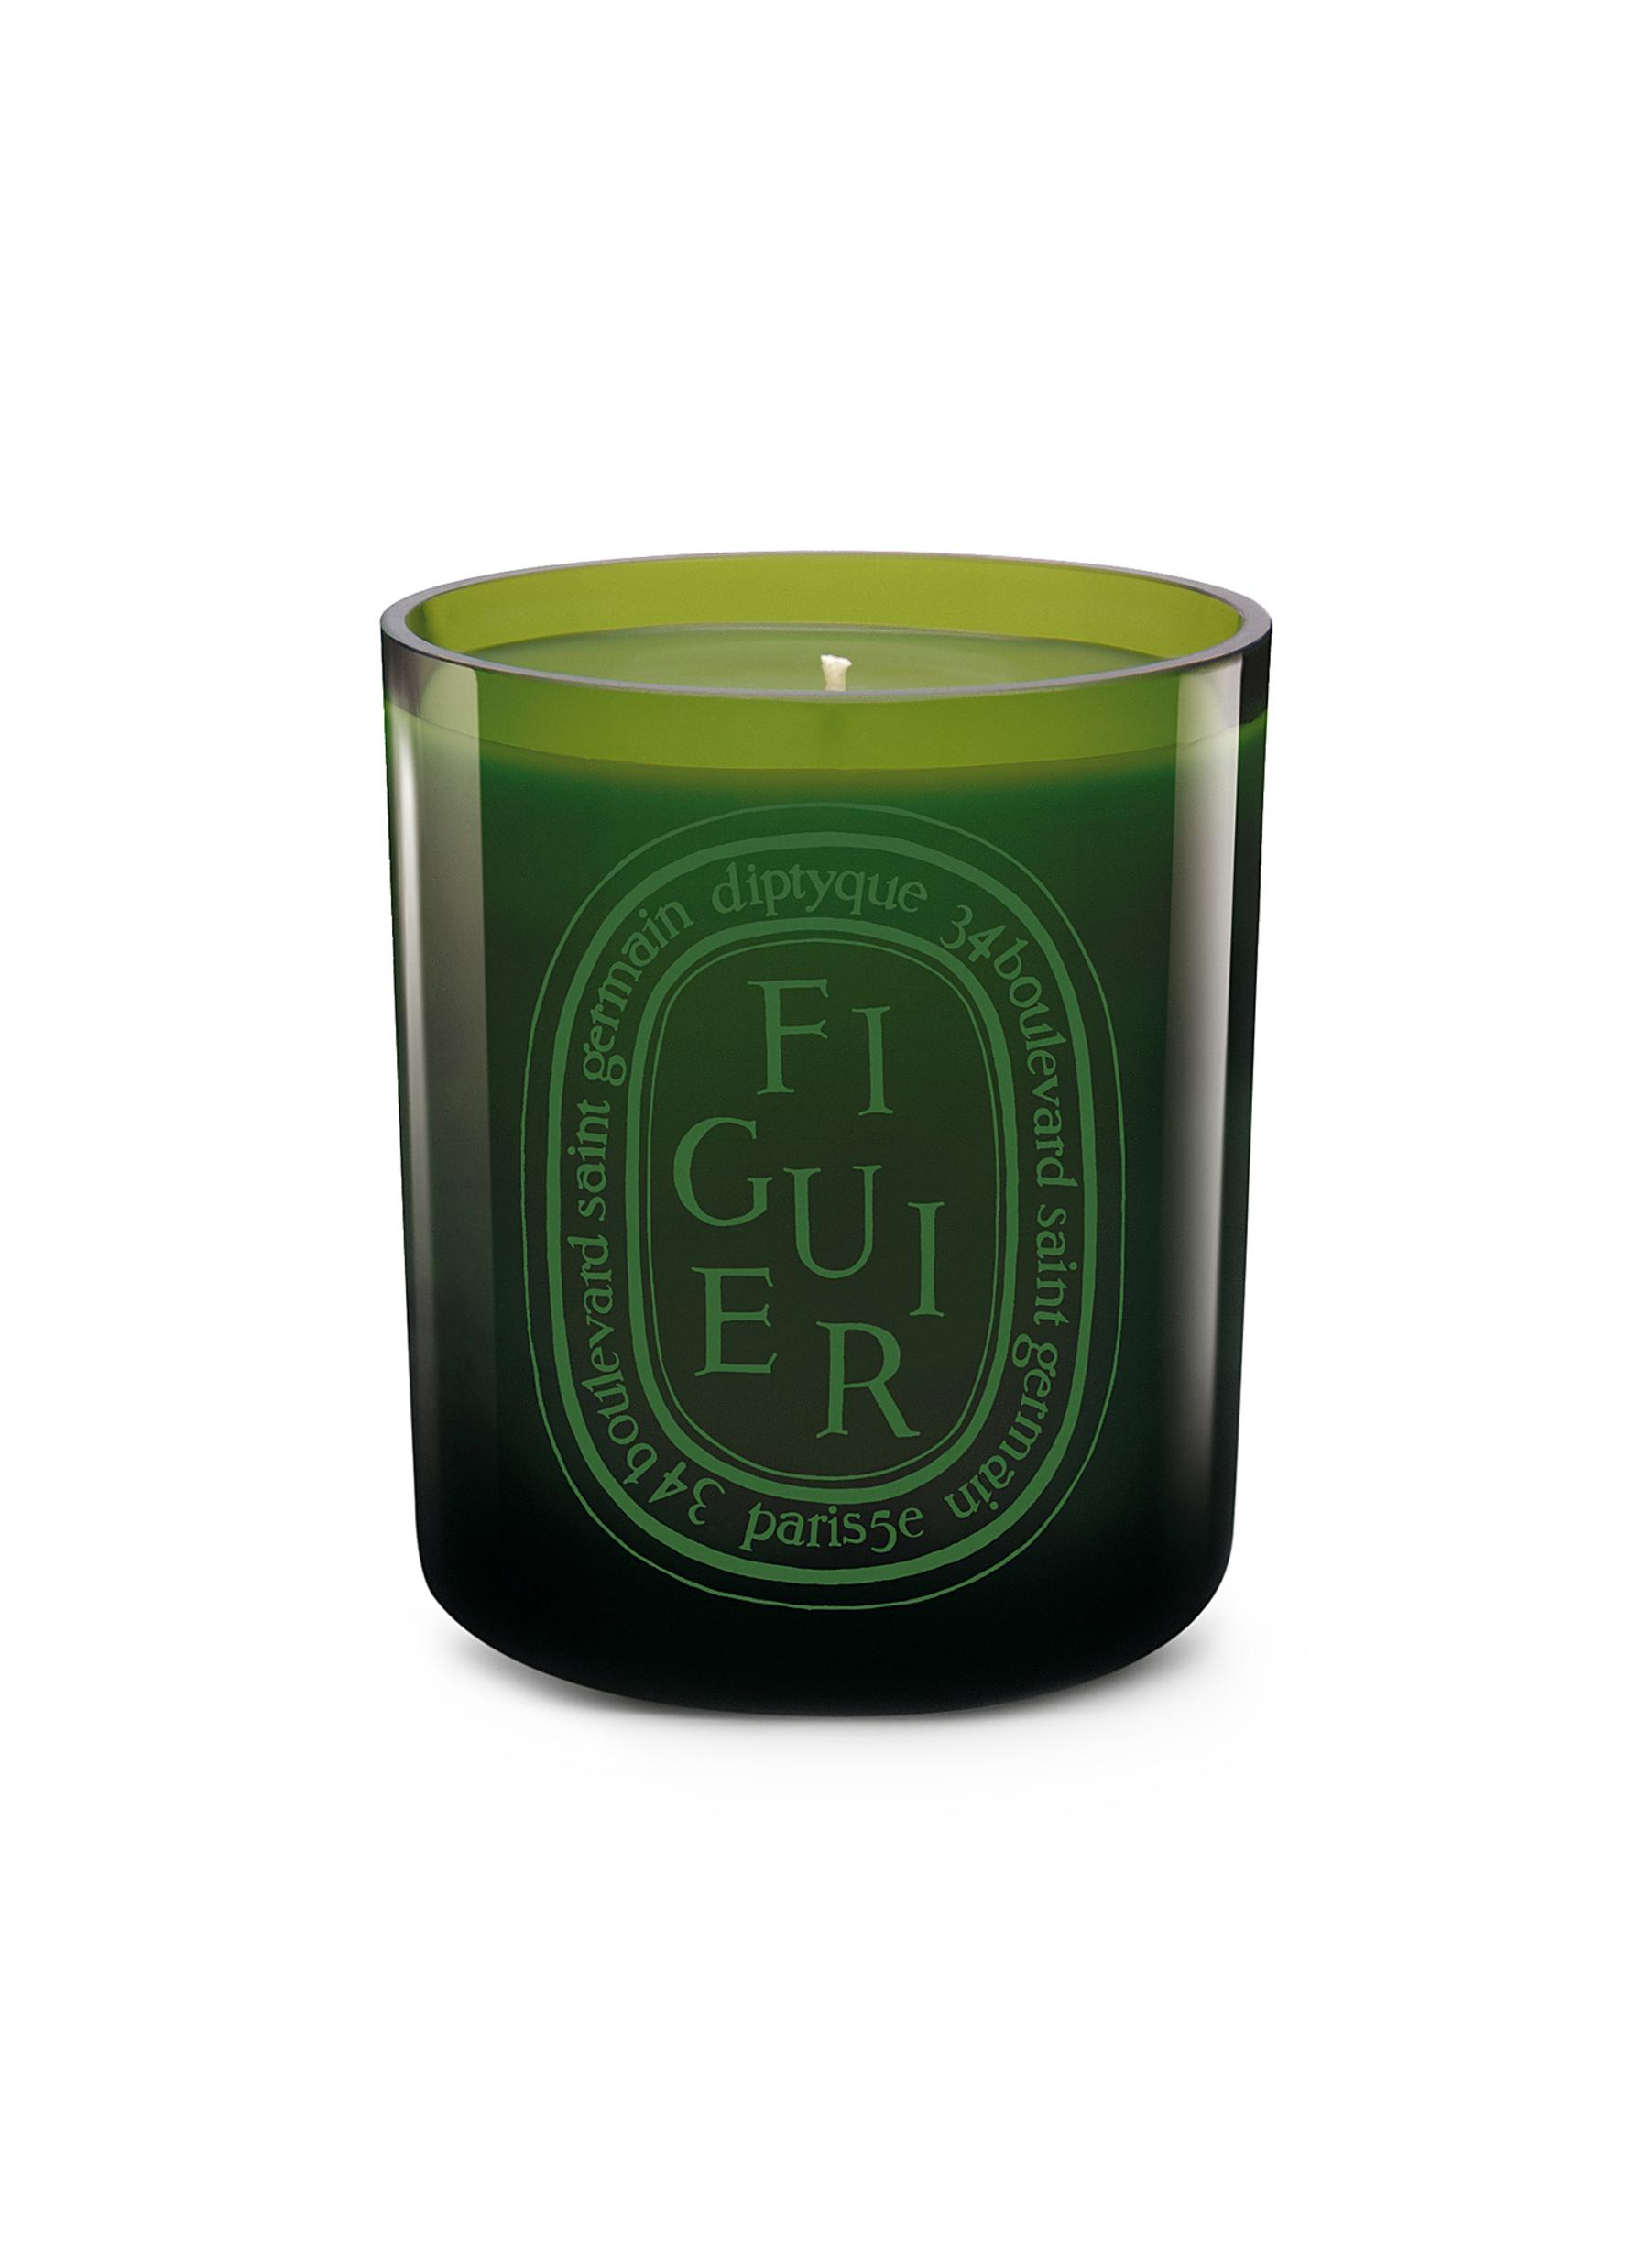 Figuier Verte Scented Coloured Candle 300g by diptyque